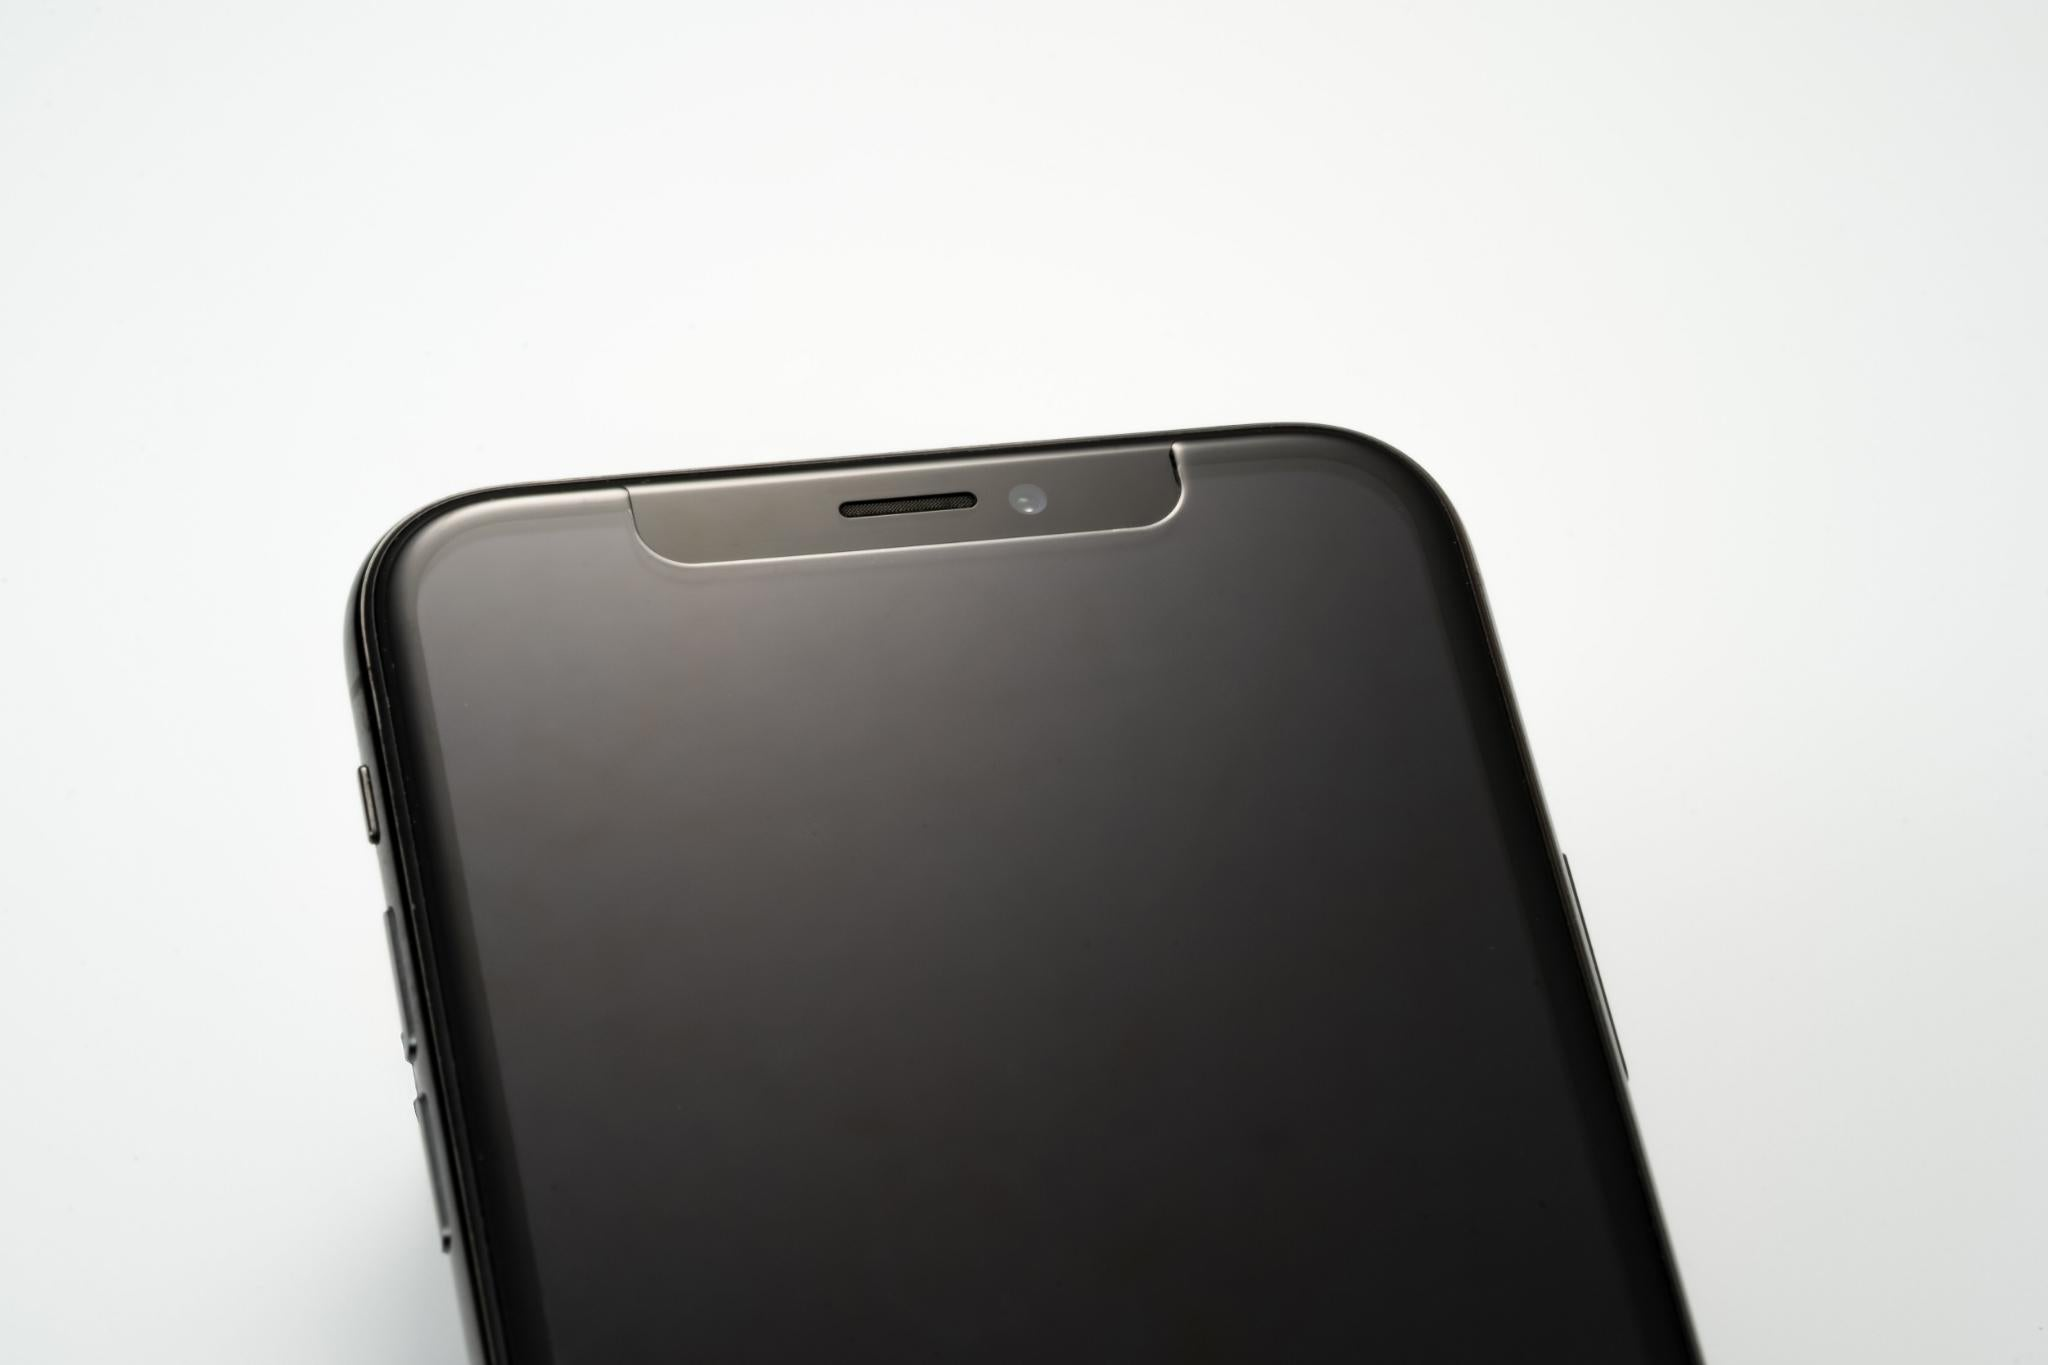 Airo Glass iPhone screen protector close-up of corners with seamless edge-to-edge protection